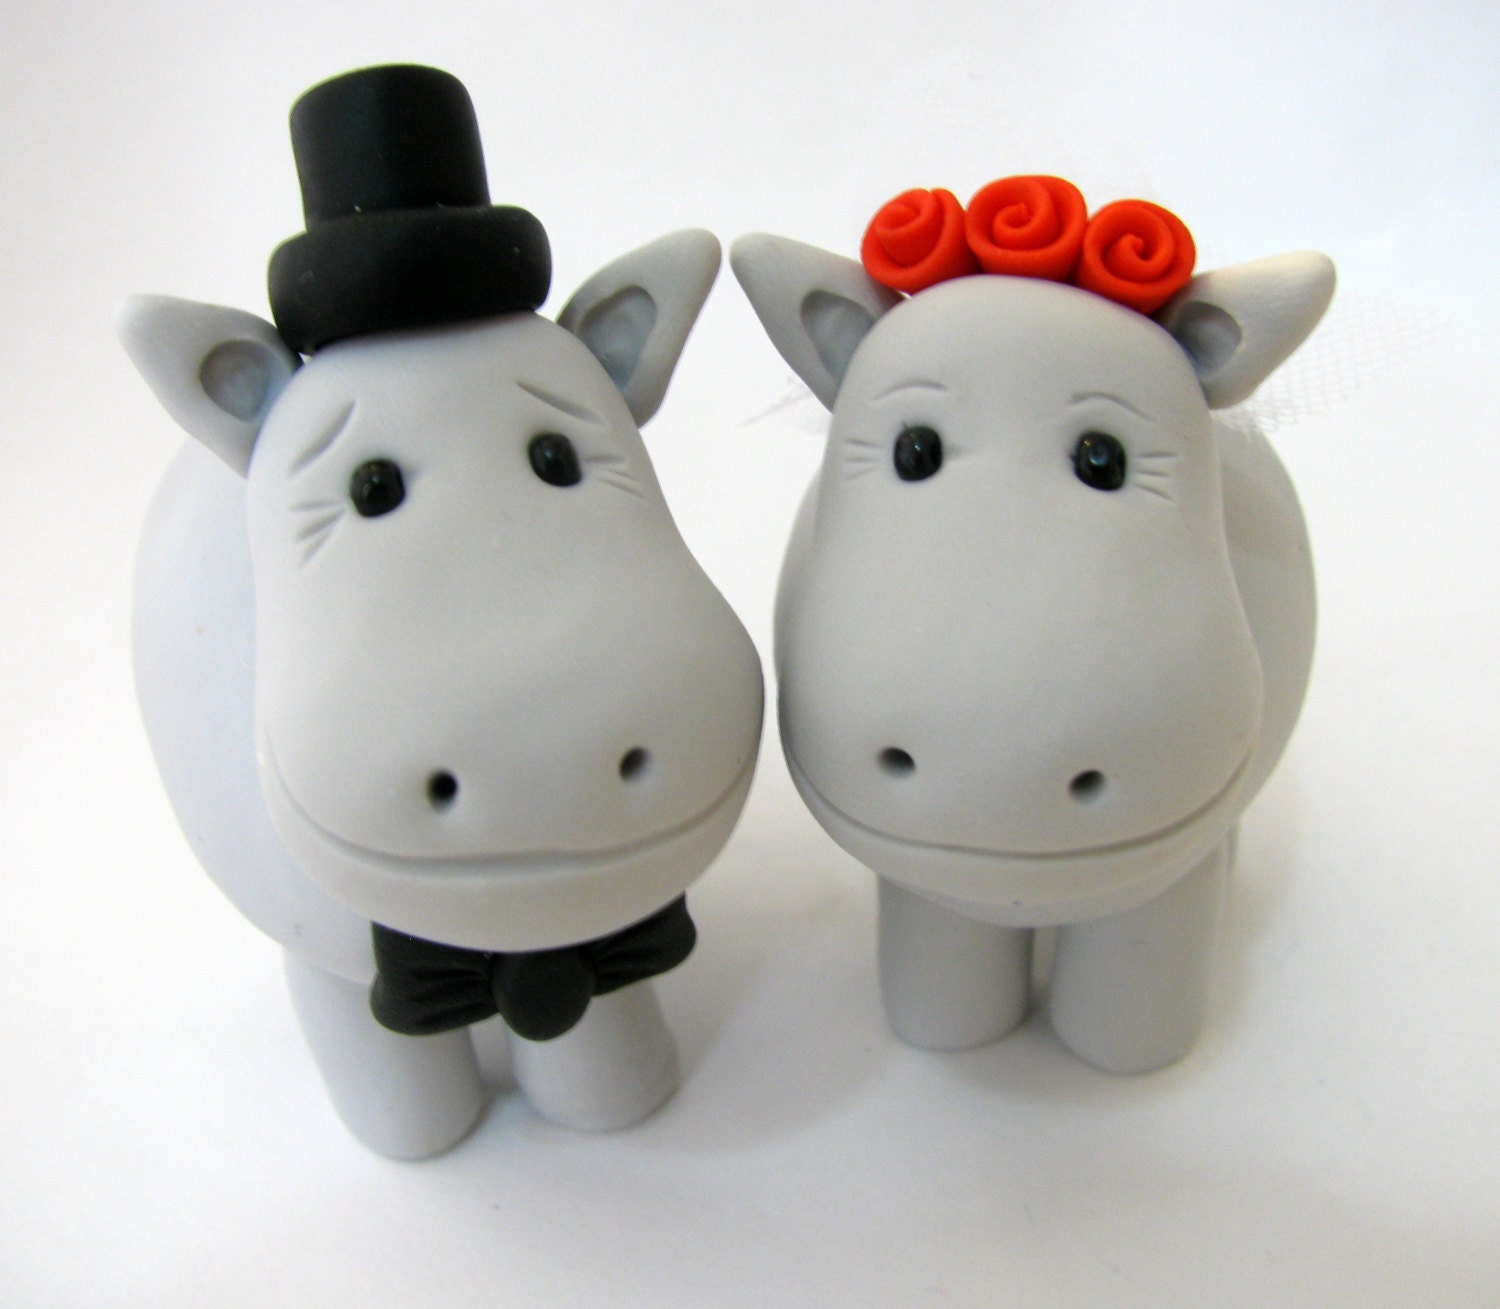 Hippo wedding cake topper cute bride and groom polymer clay